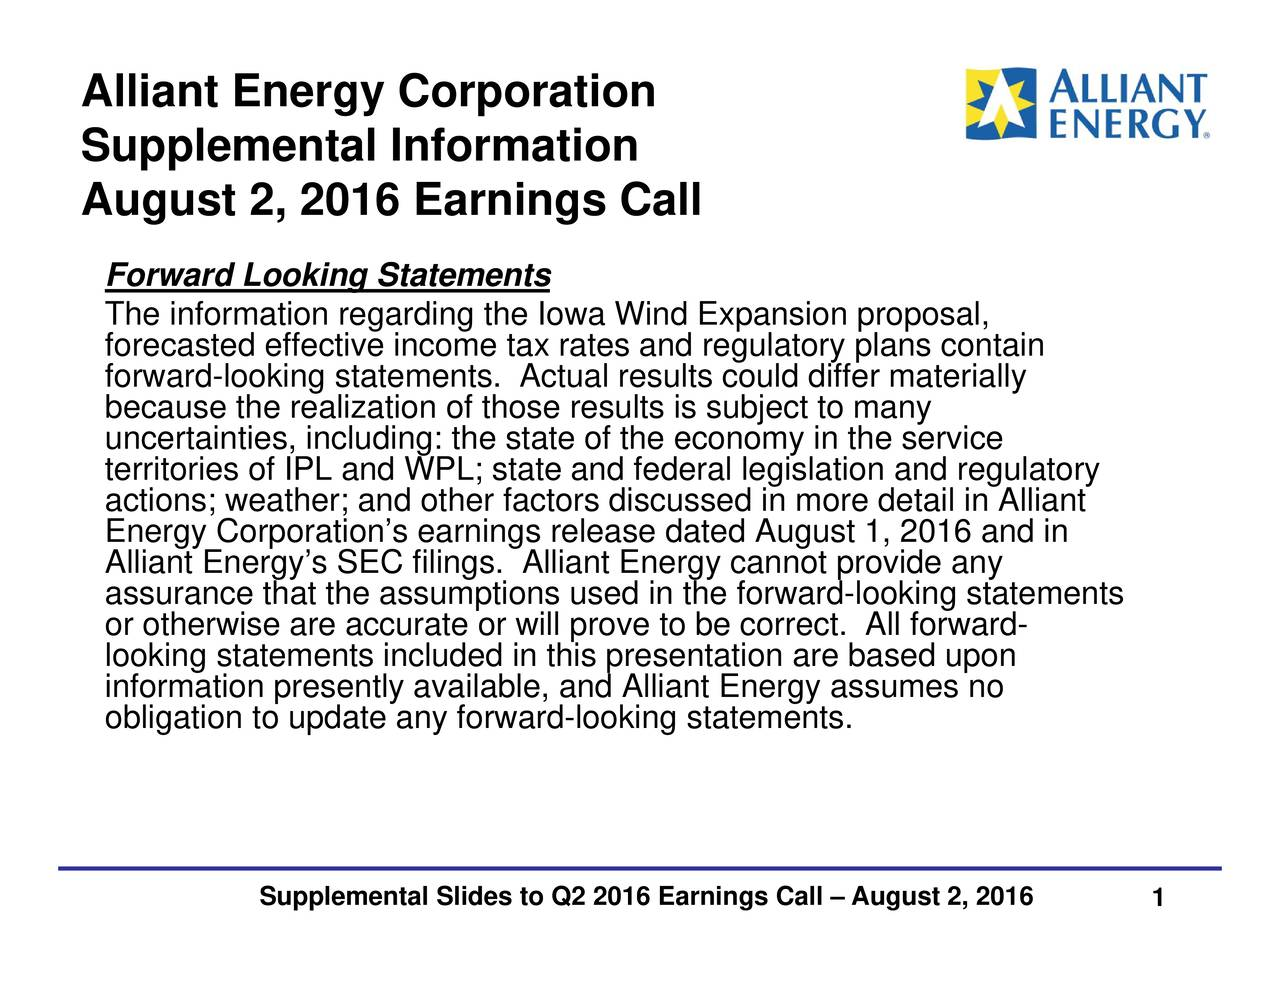 in the forward-looking statements results is subject to many relliant Energy cannot provide anyn Supplemental Slides to Q2 2016 Earnings Call  August 2, 2016 AllSianptuEgnmertgyn,Cl0I16forratiotnons CalltrcsenlrEsuesnsaulrysf